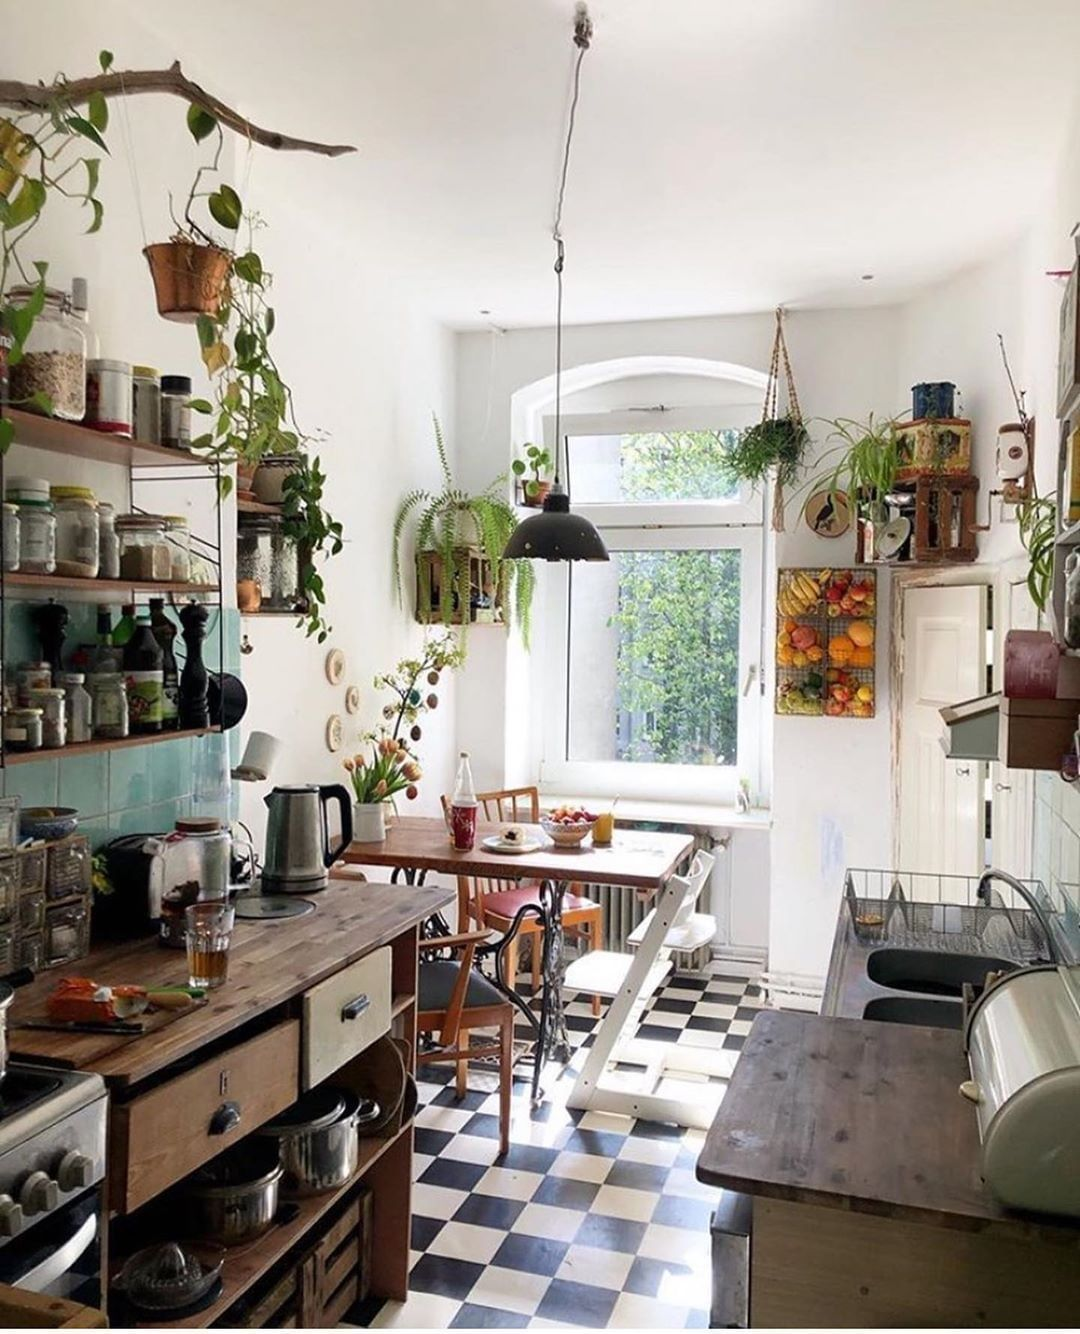 """Home Deco on Instagram """"Lovely, lively, cozy kitchen 🌿 ↠ Follow ..."""